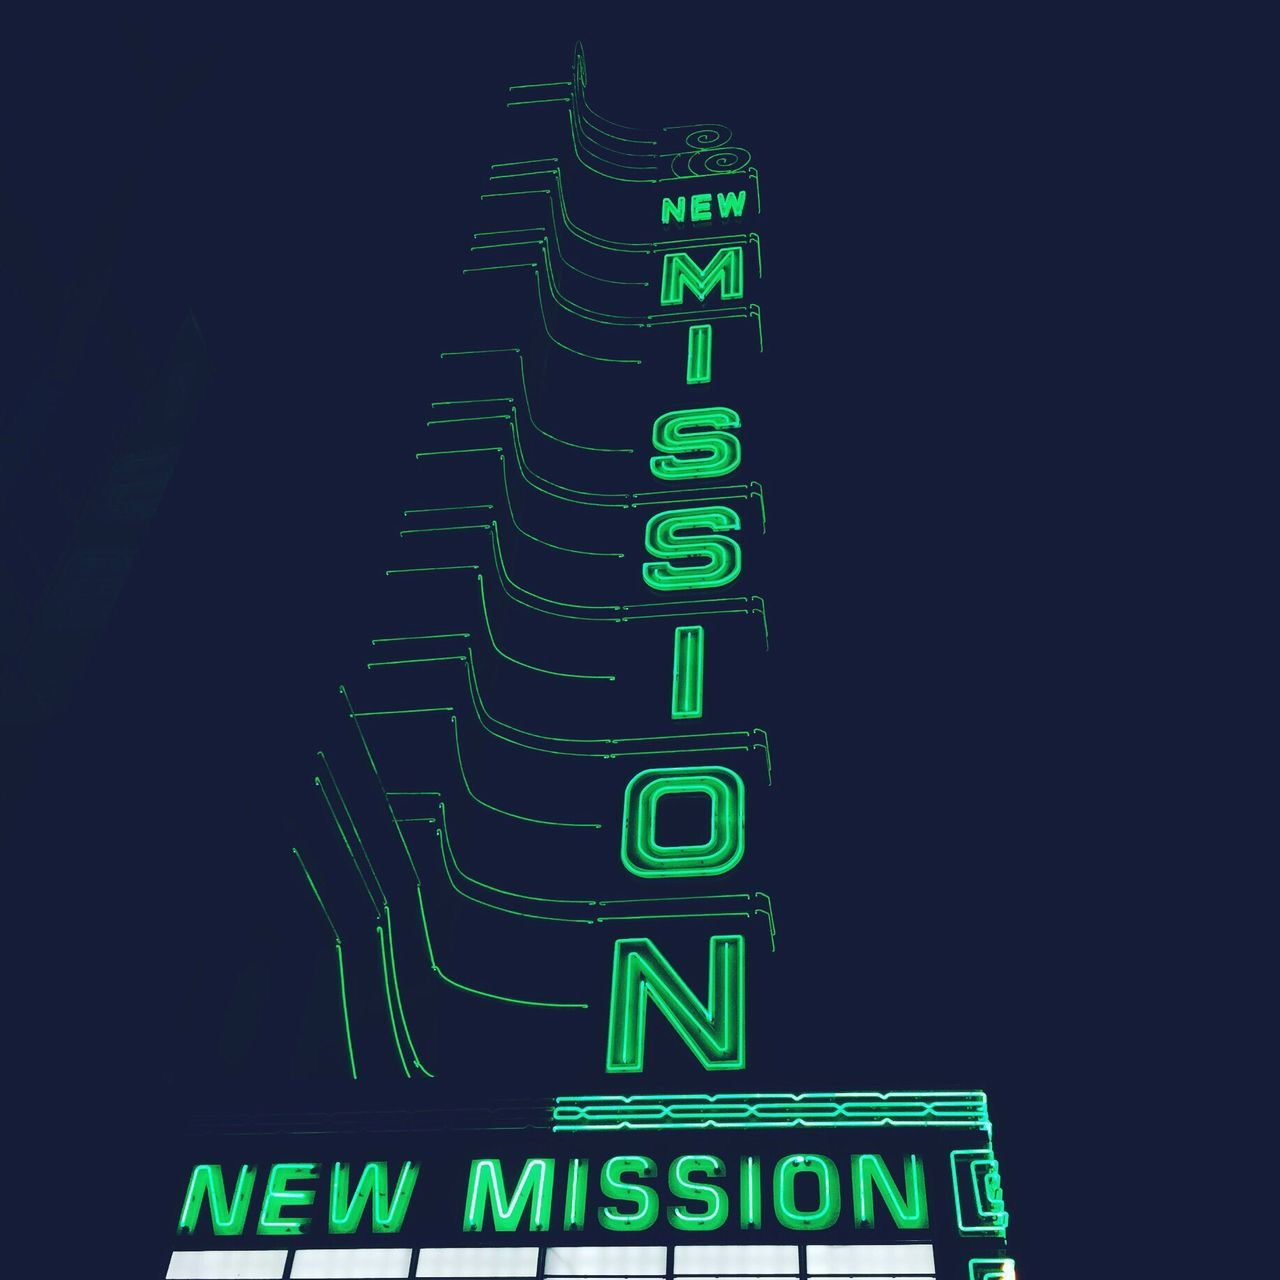 text, communication, illuminated, night, number, guidance, neon, no people, outdoors, low angle view